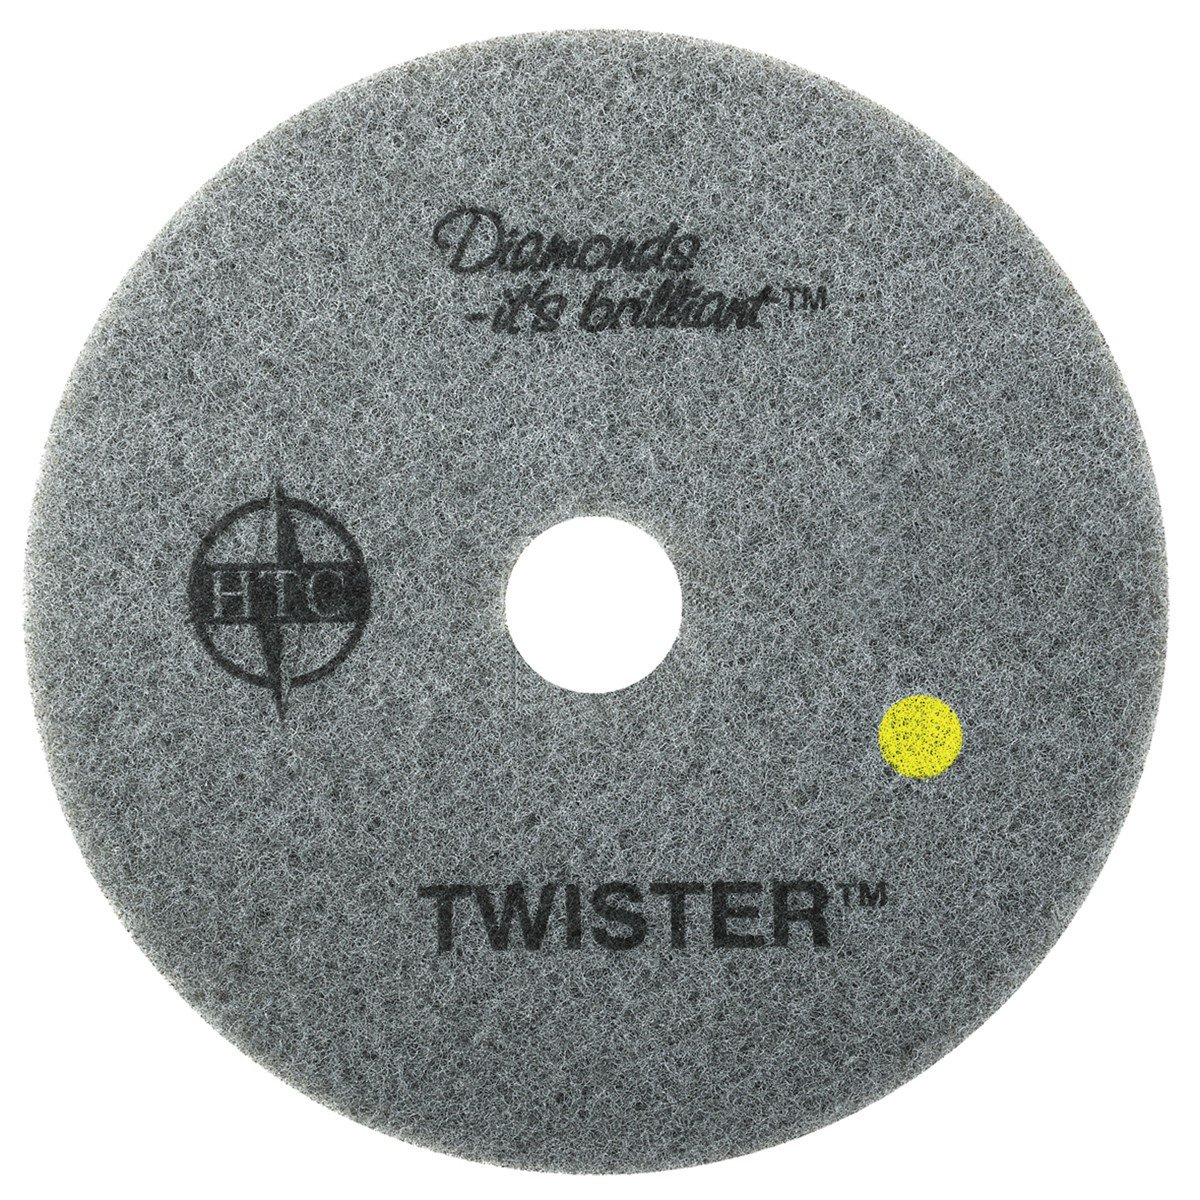 Twister Diamond Cleaning System 20'' Yellow Floor Pad - 1500 Grit - 2 per case by Americo